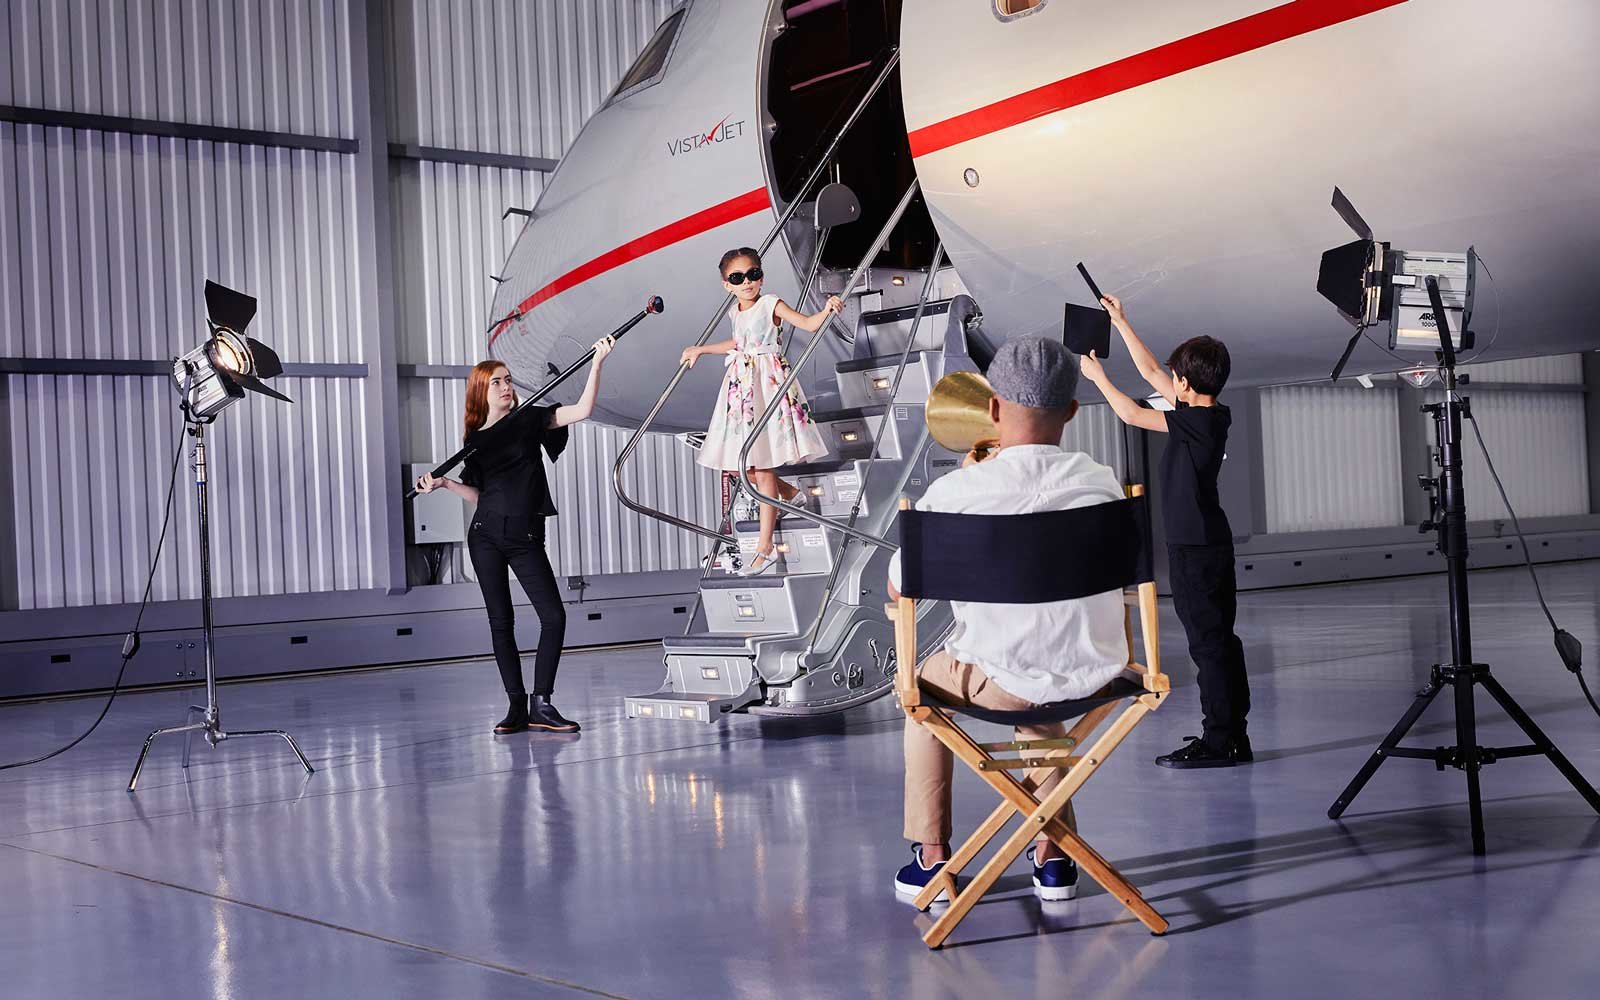 Movie experience on VistaJet, for kids